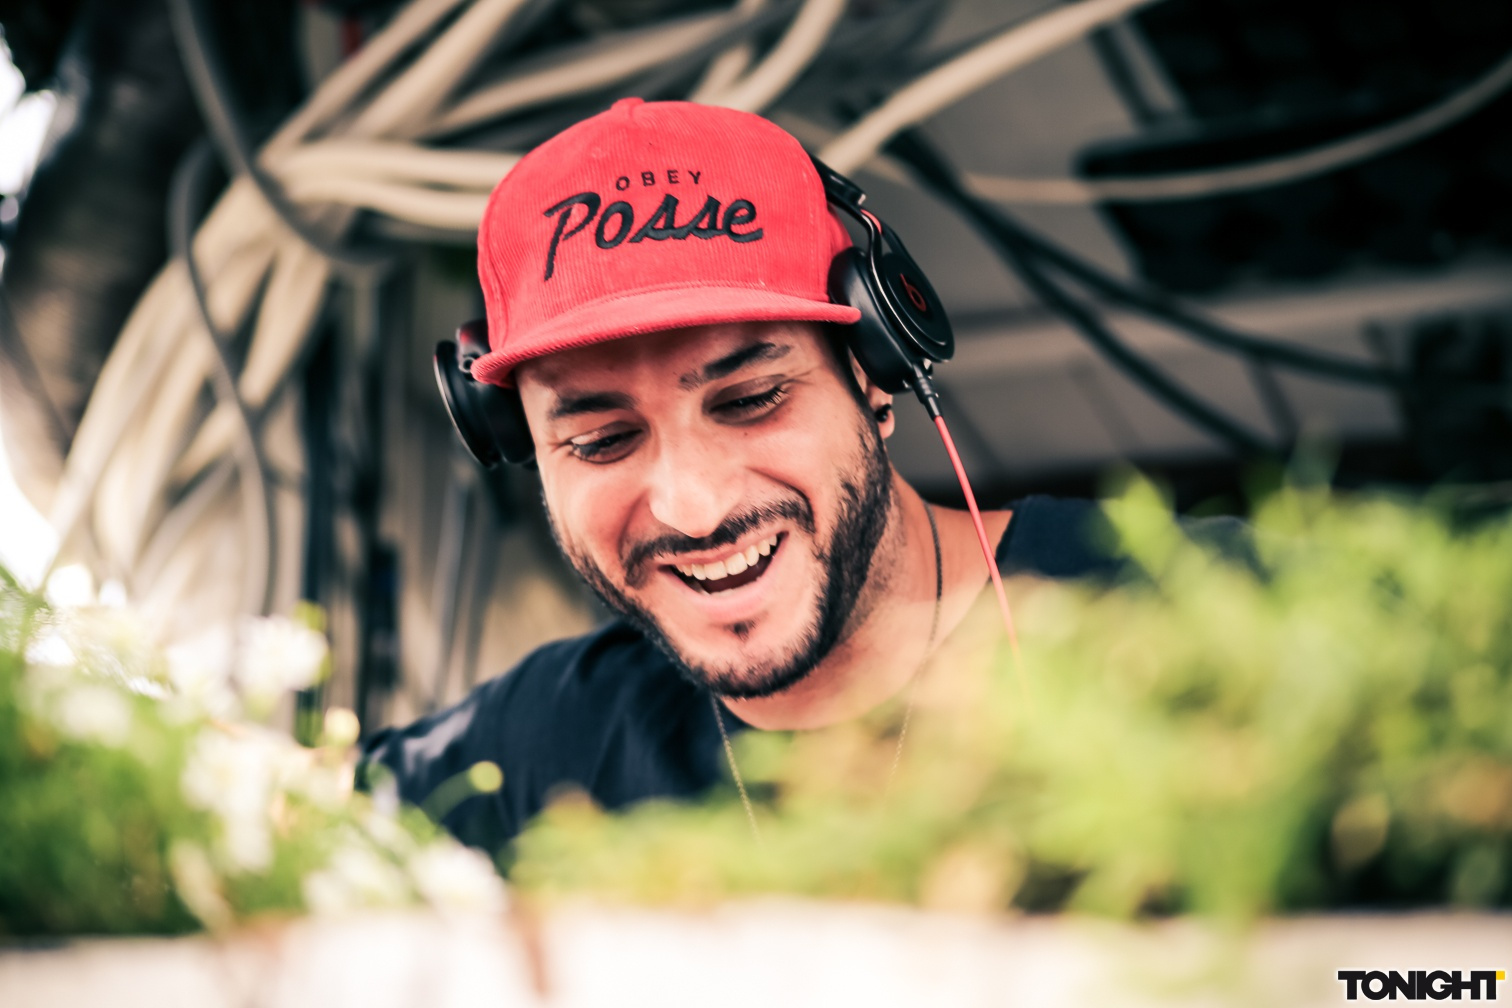 Homebase: Loco Dice in der Kiesgrube.